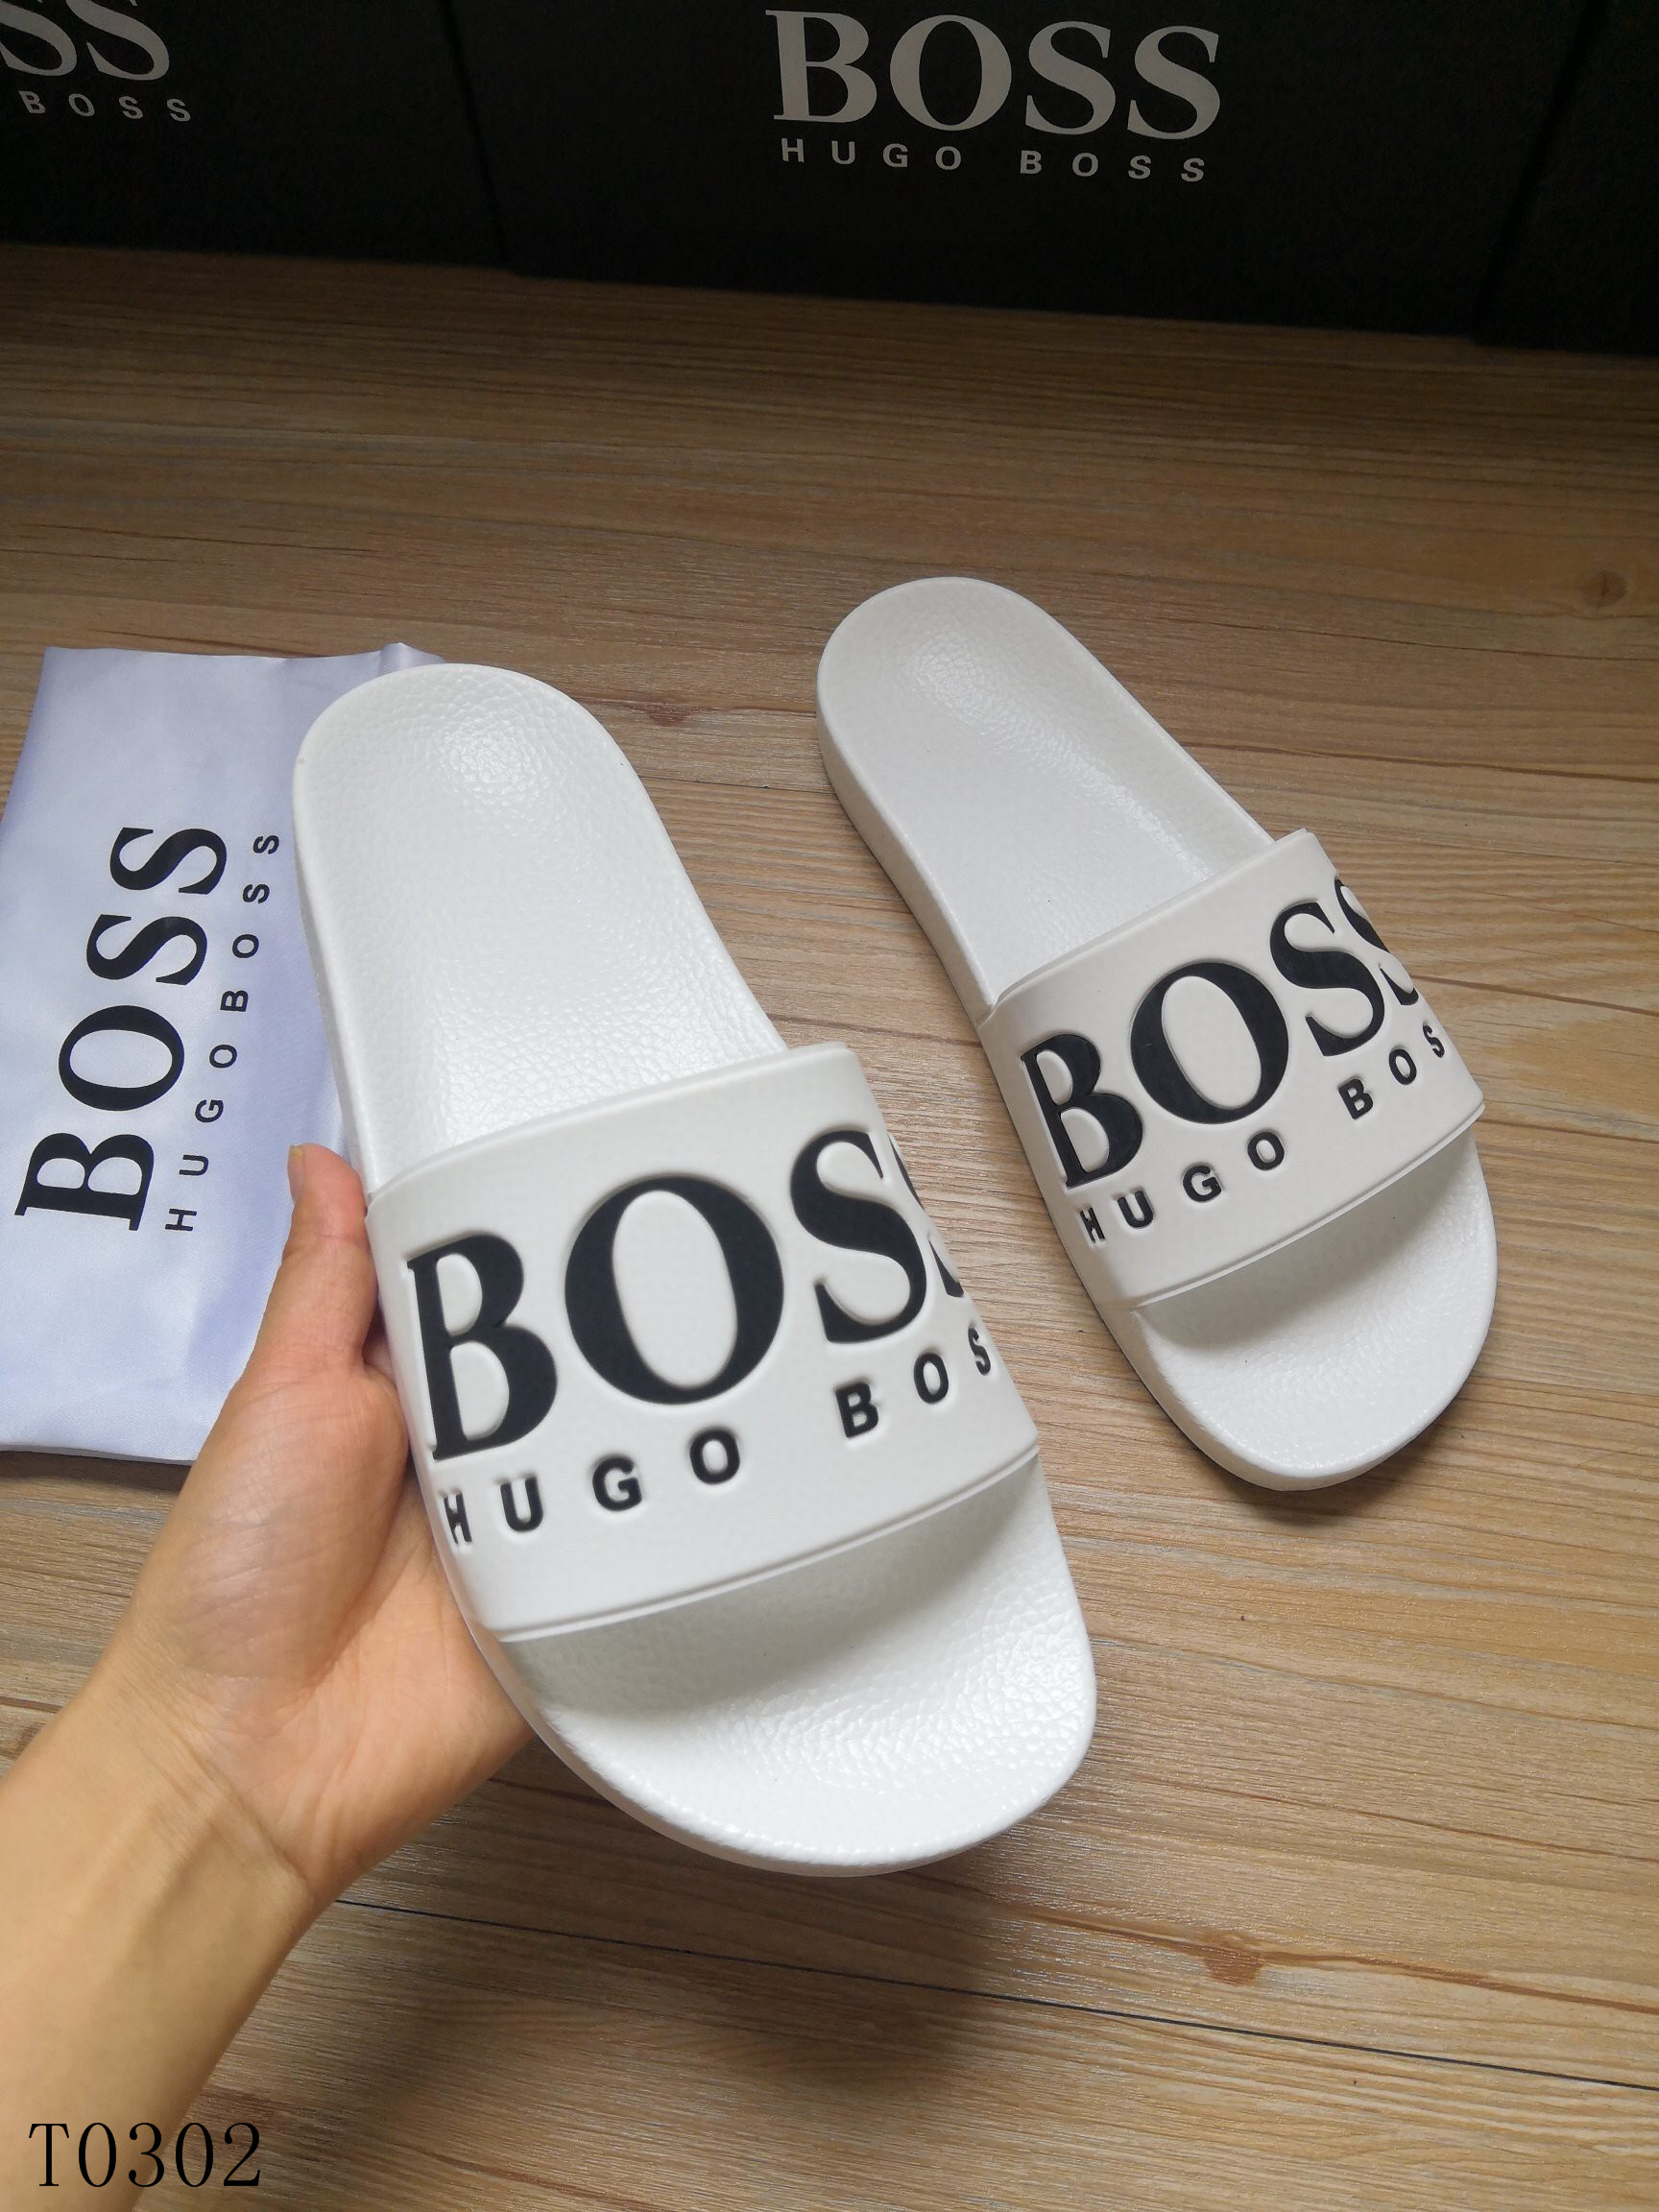 Hugo Boss Women's Slippers 02